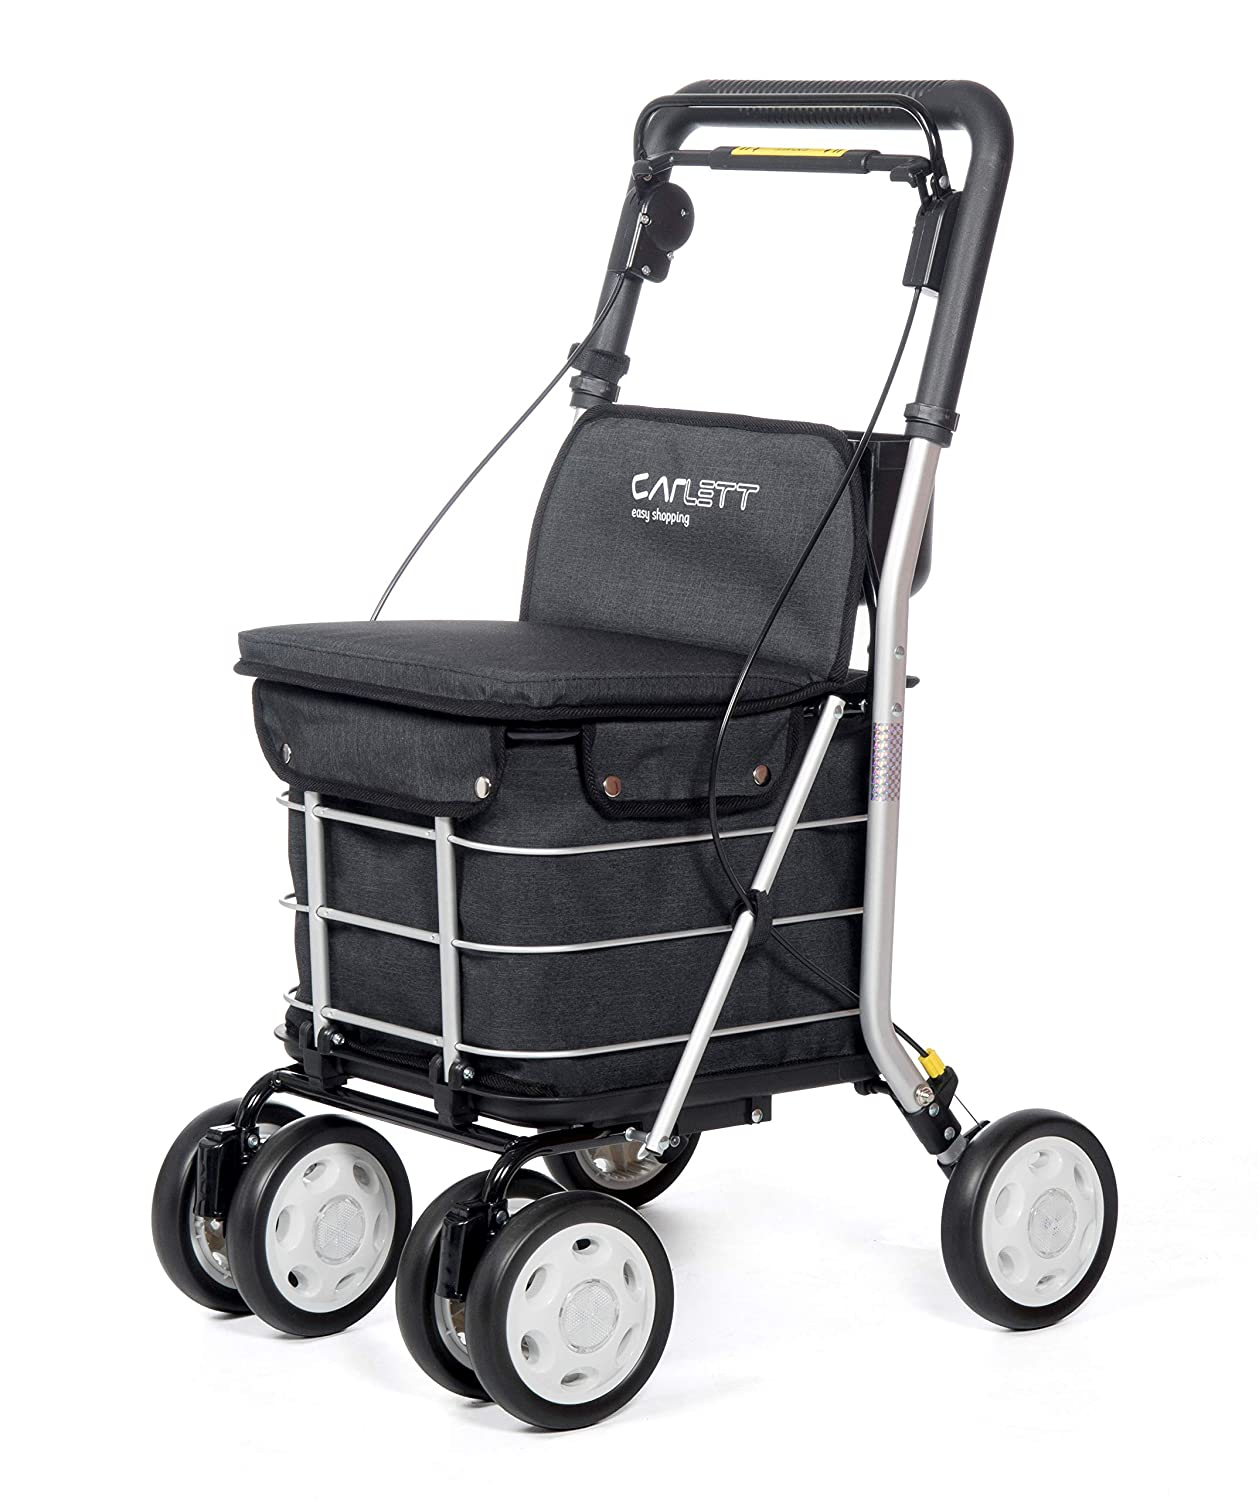 Amazon.com: Carlett Shopping Trolley Lett 800 Grey Textured ...